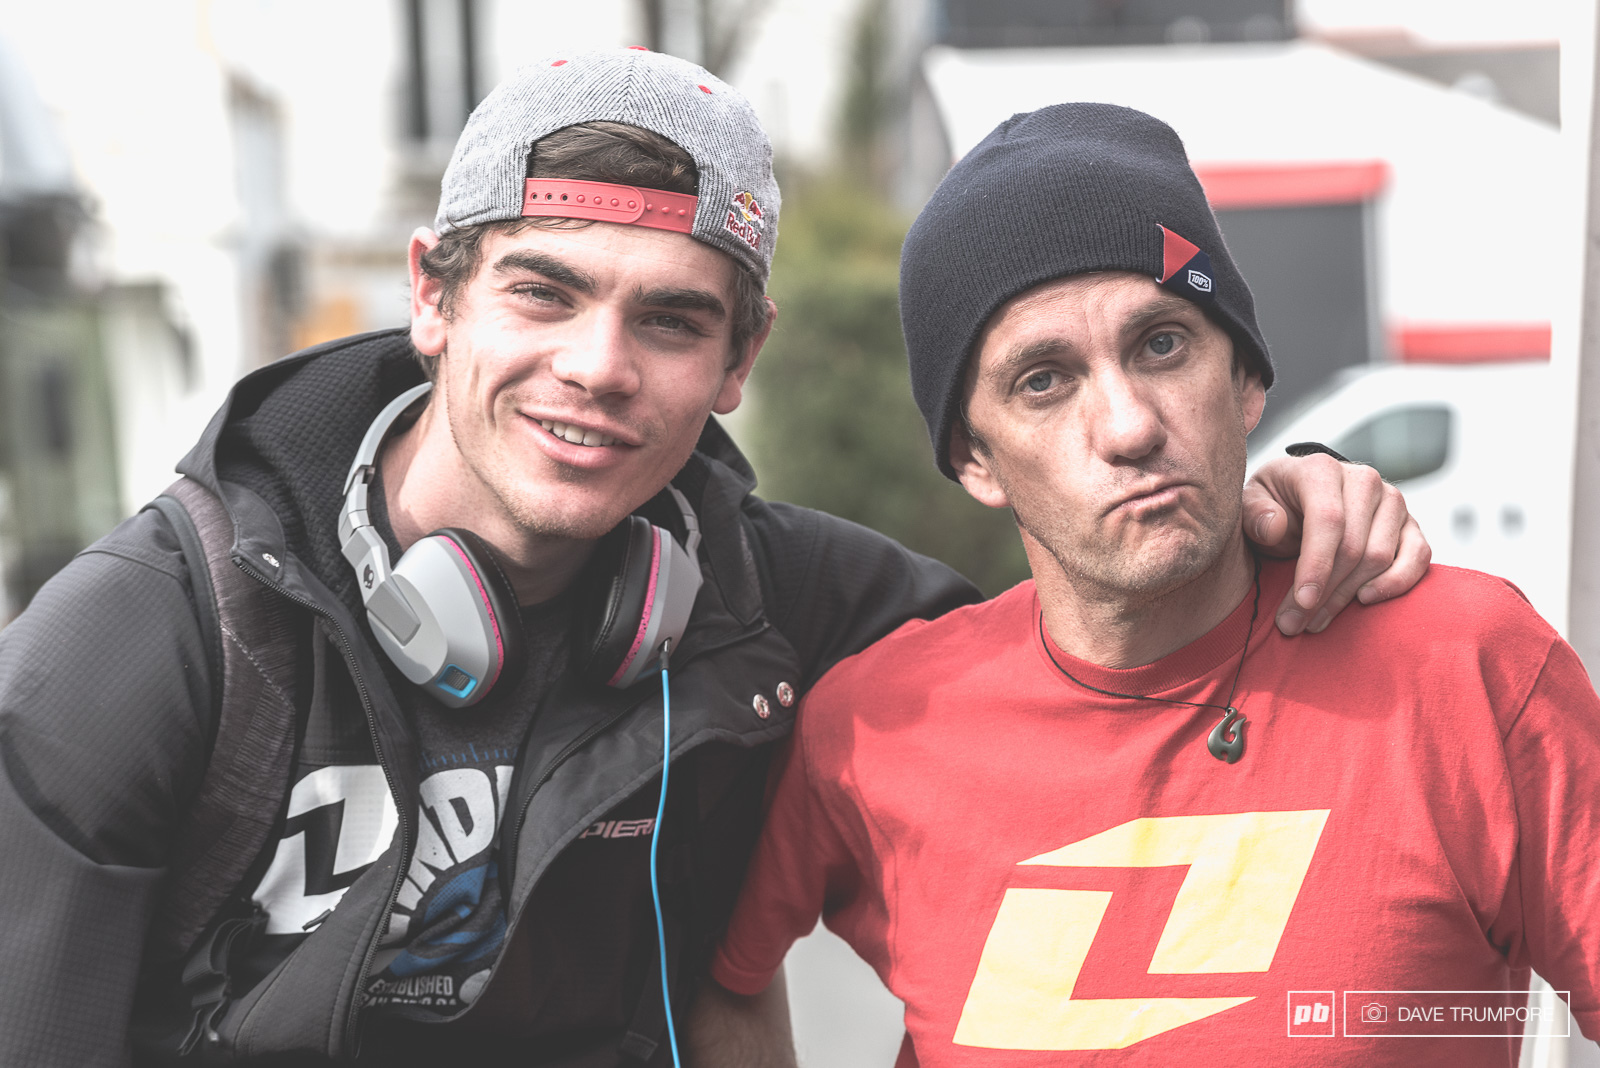 Loic and Jack